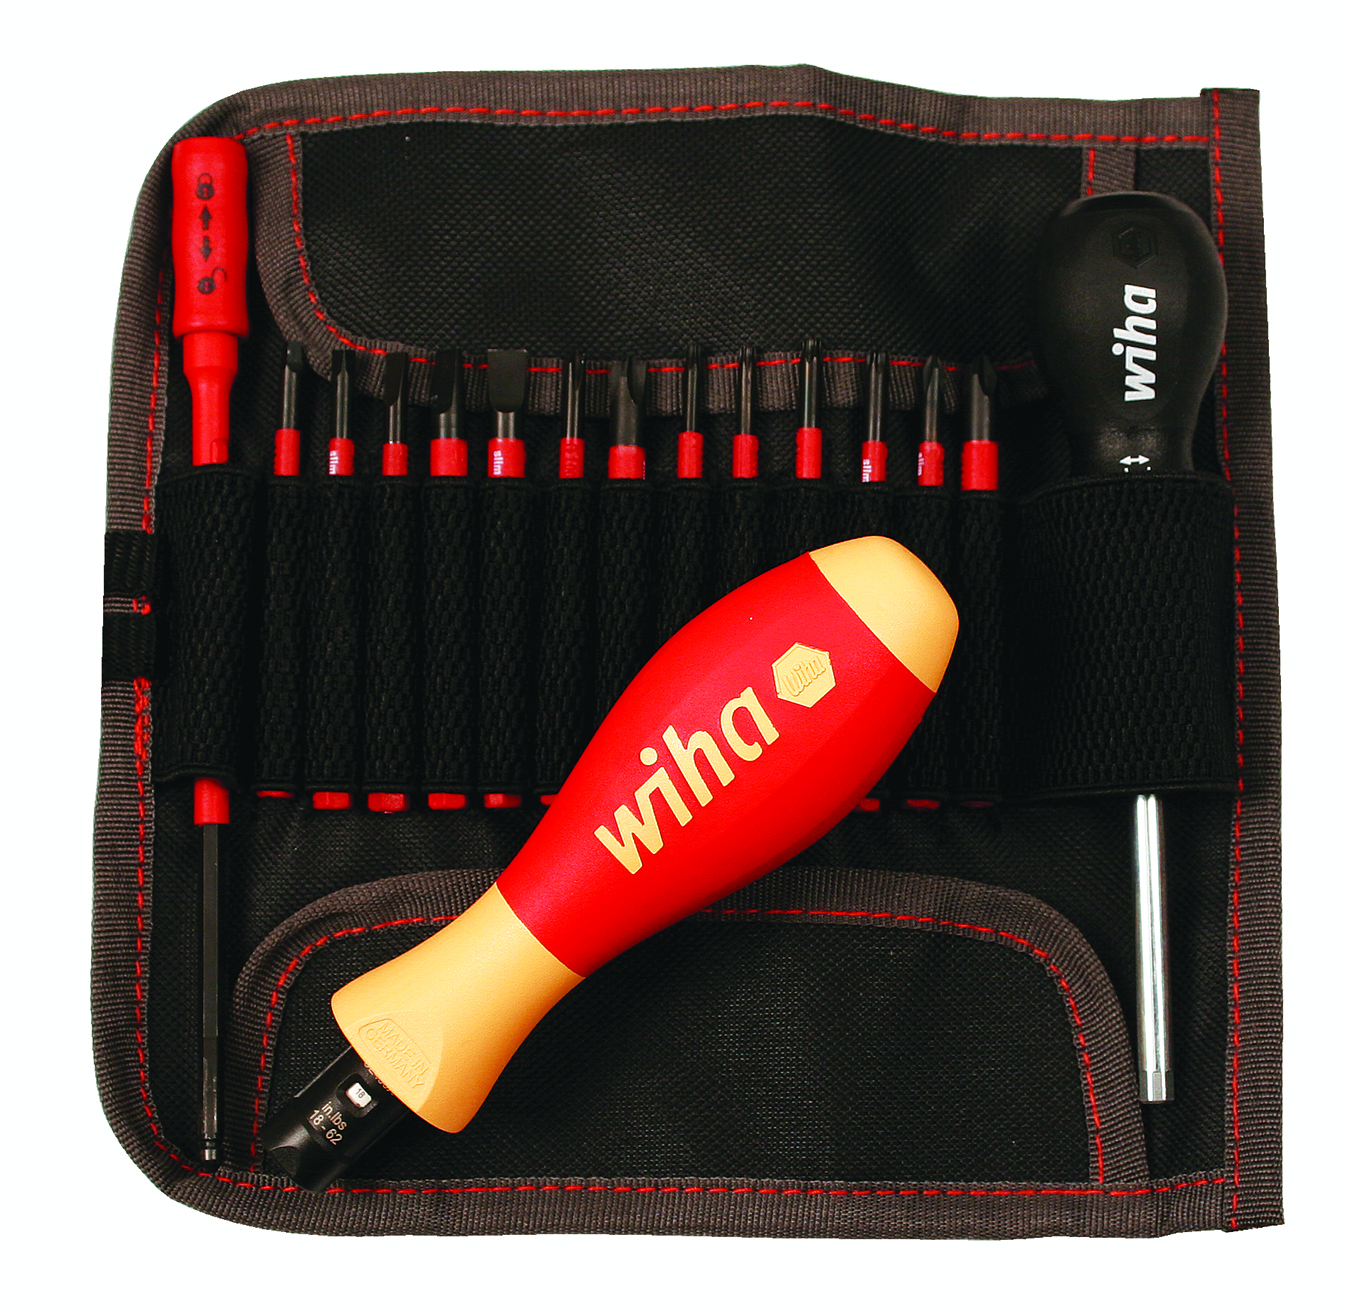 Wiha 28792 Insulated TorqueControl 16 Piece Set